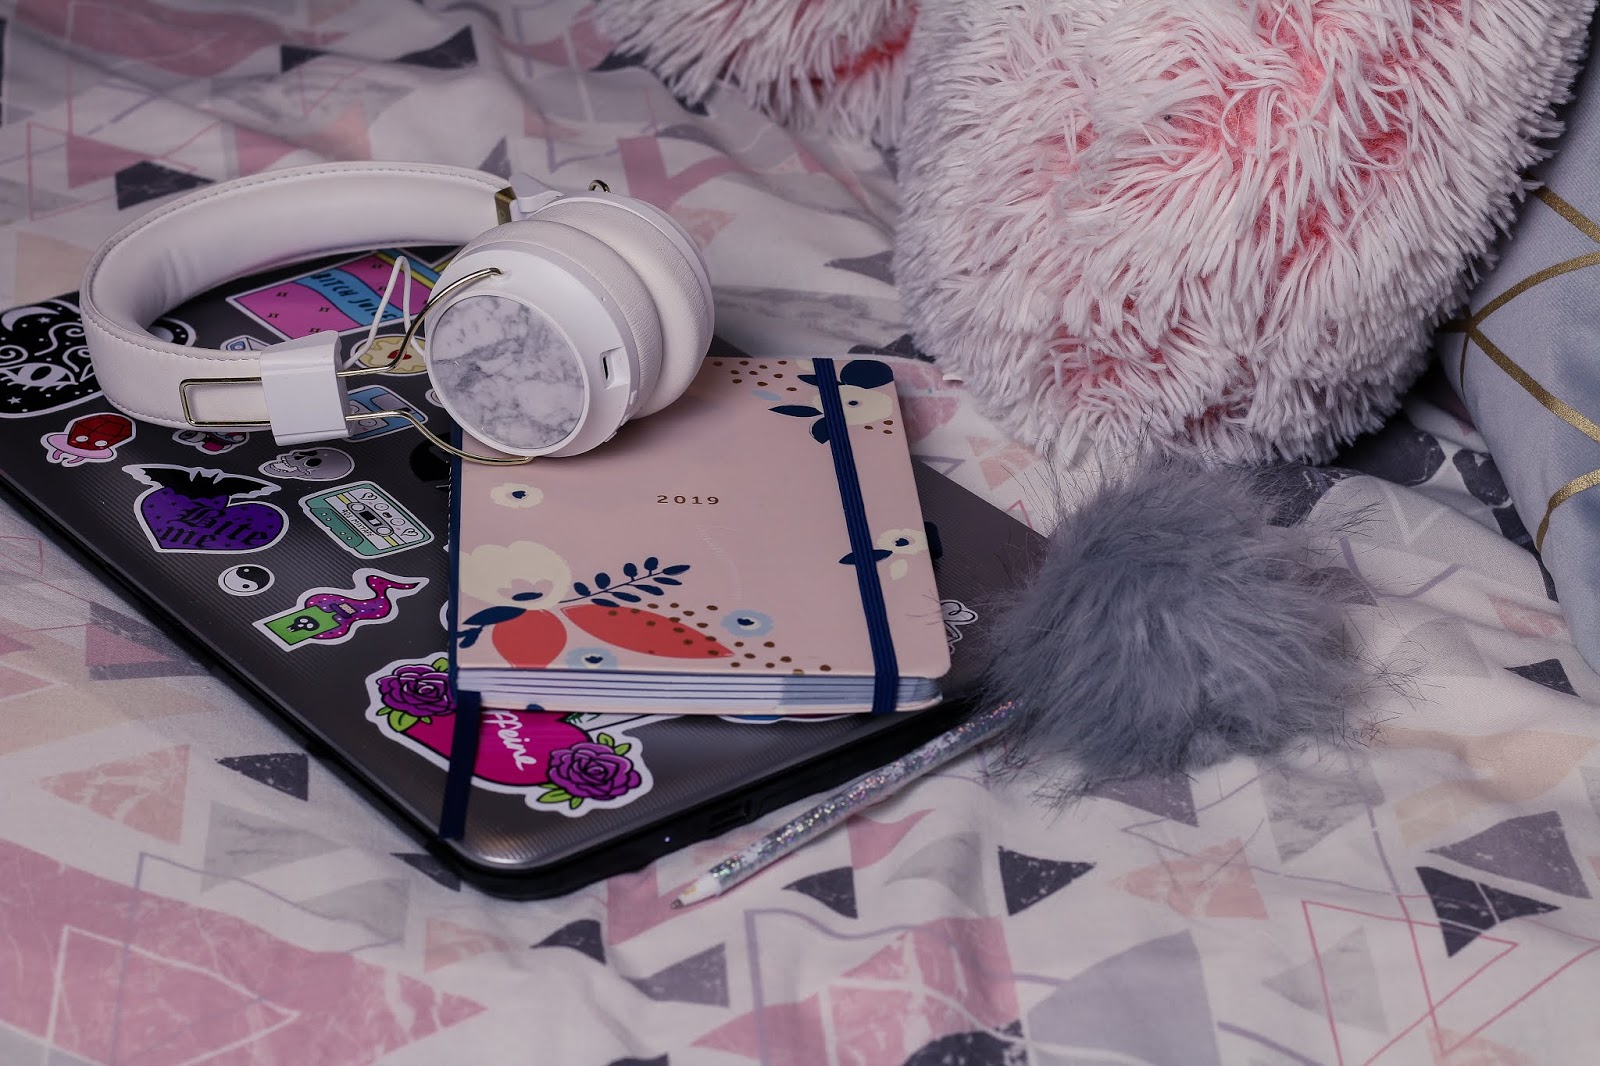 Close up photo of white headphones, a silver HP laptop and busy b diary that is pink sitting on a bed with geometric pink and great bed sheets.